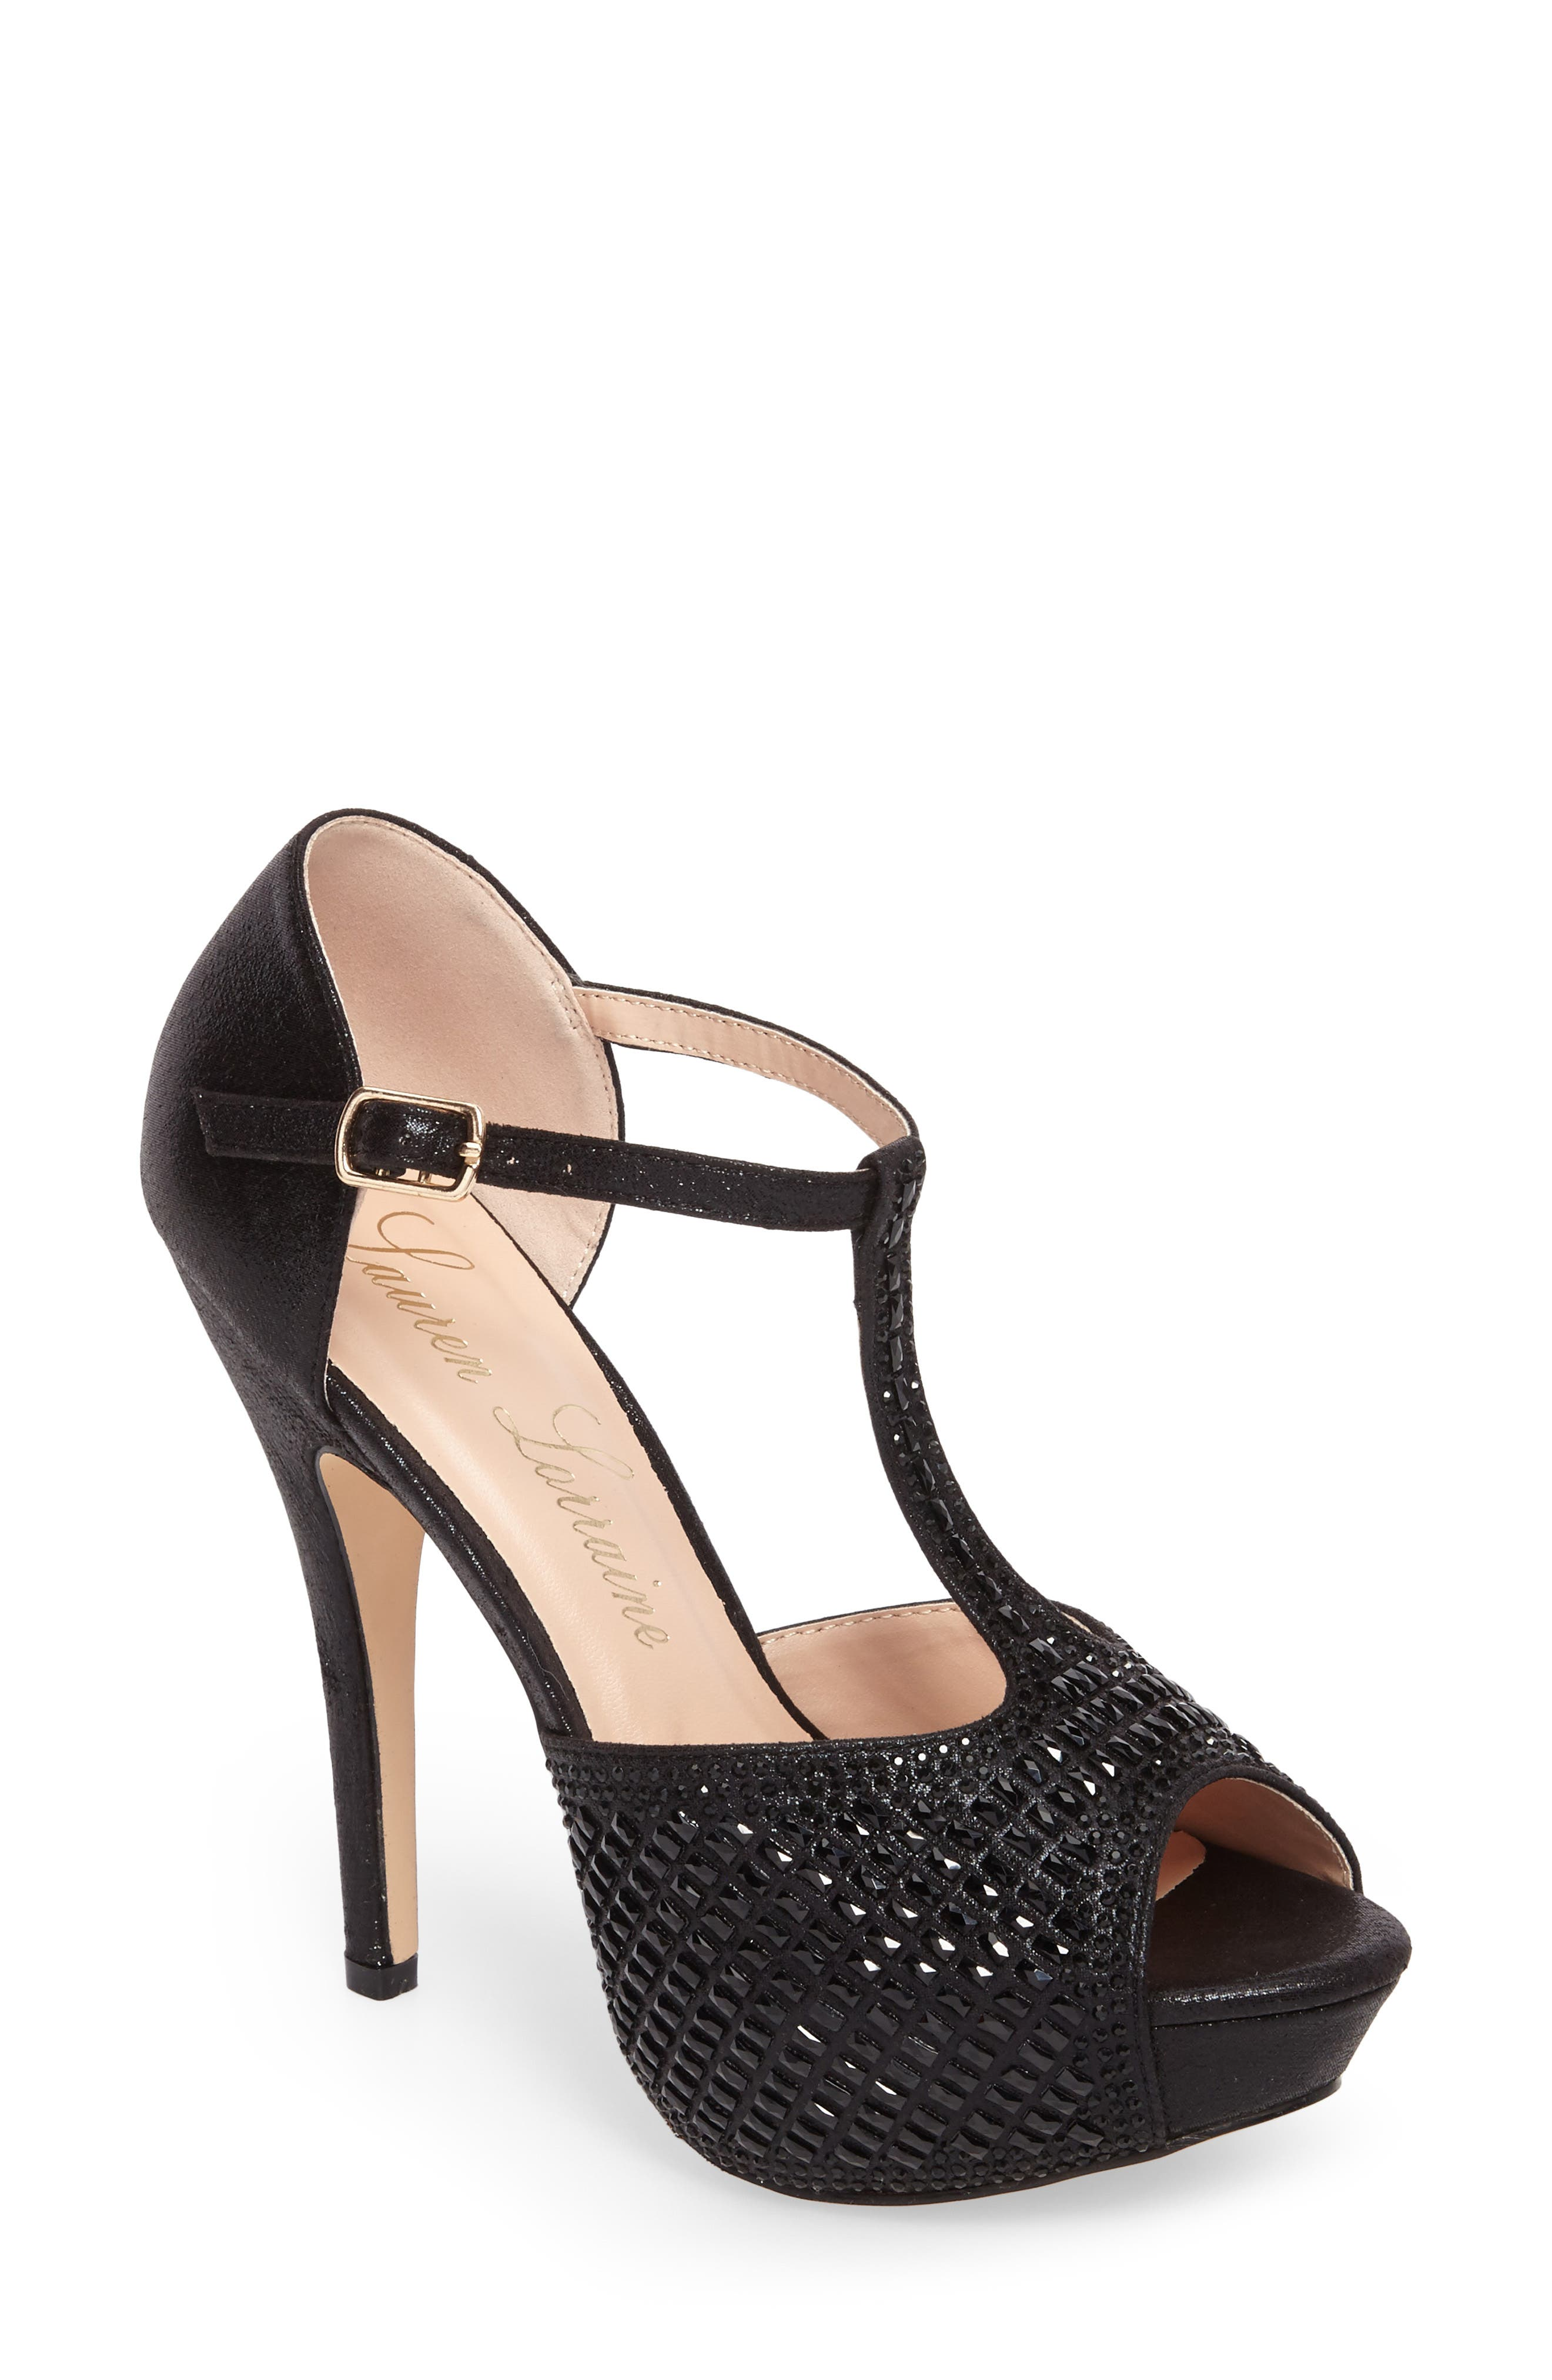 Vivian 4 Crystal Embellished Sandal,                             Main thumbnail 1, color,                             Black Shimmer